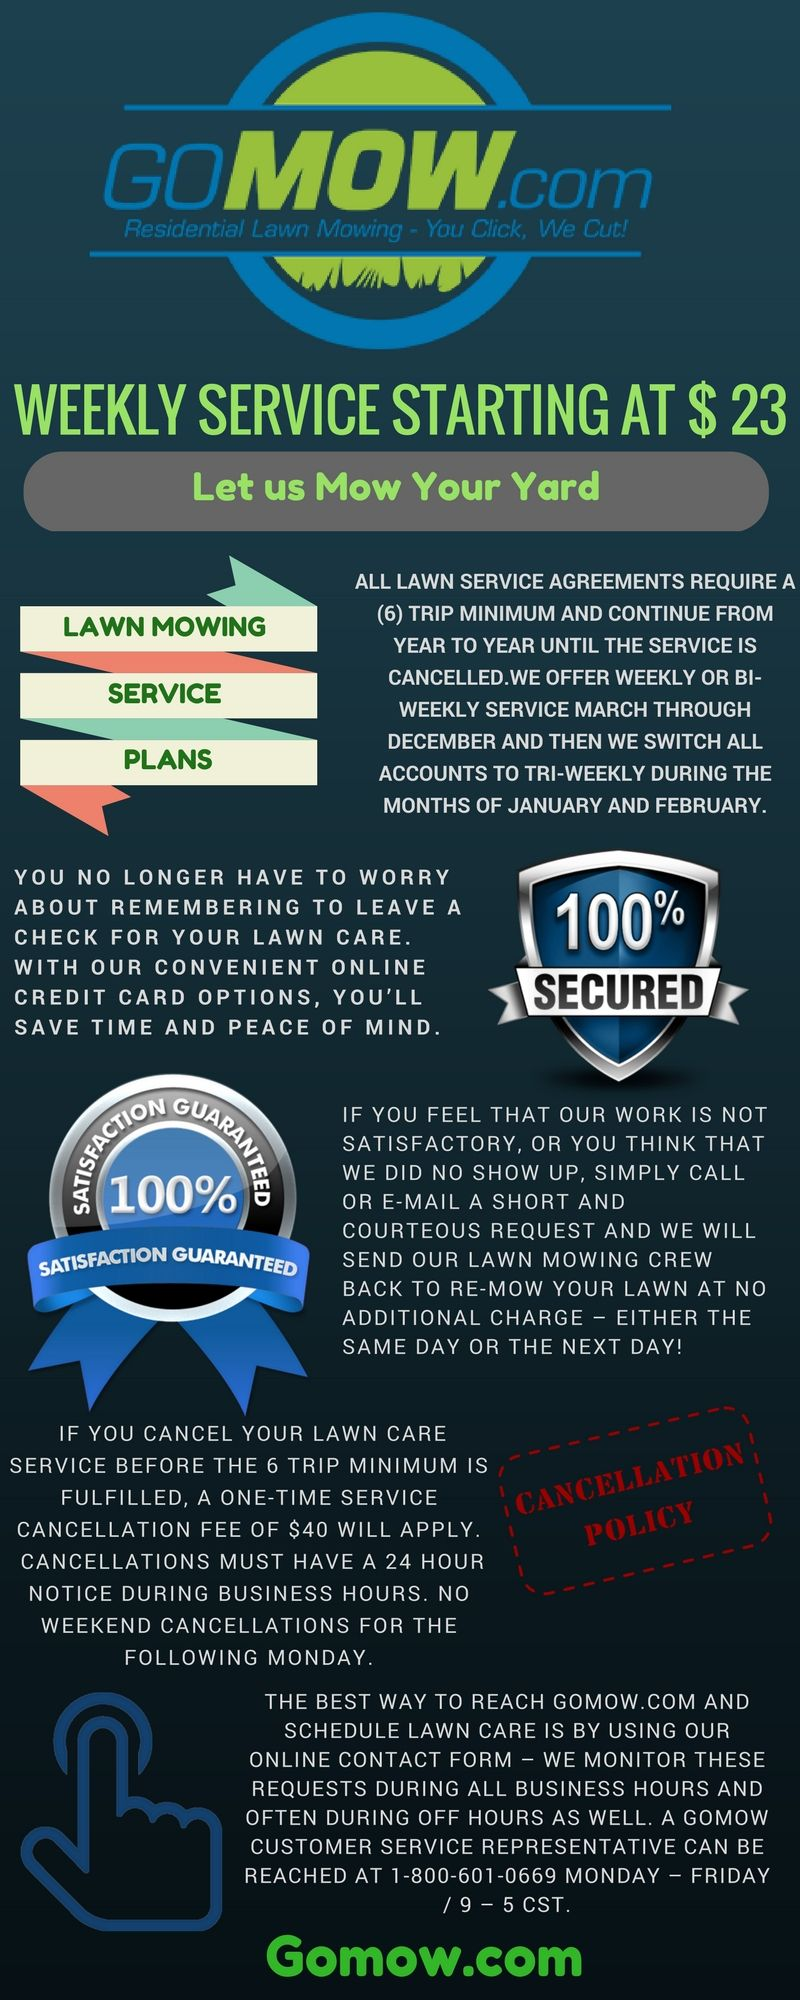 weekly lawn care on affordable lawn care cost lawn mowing services plans prices 2021 gomow affordable lawn care mowing services lawn care pinterest